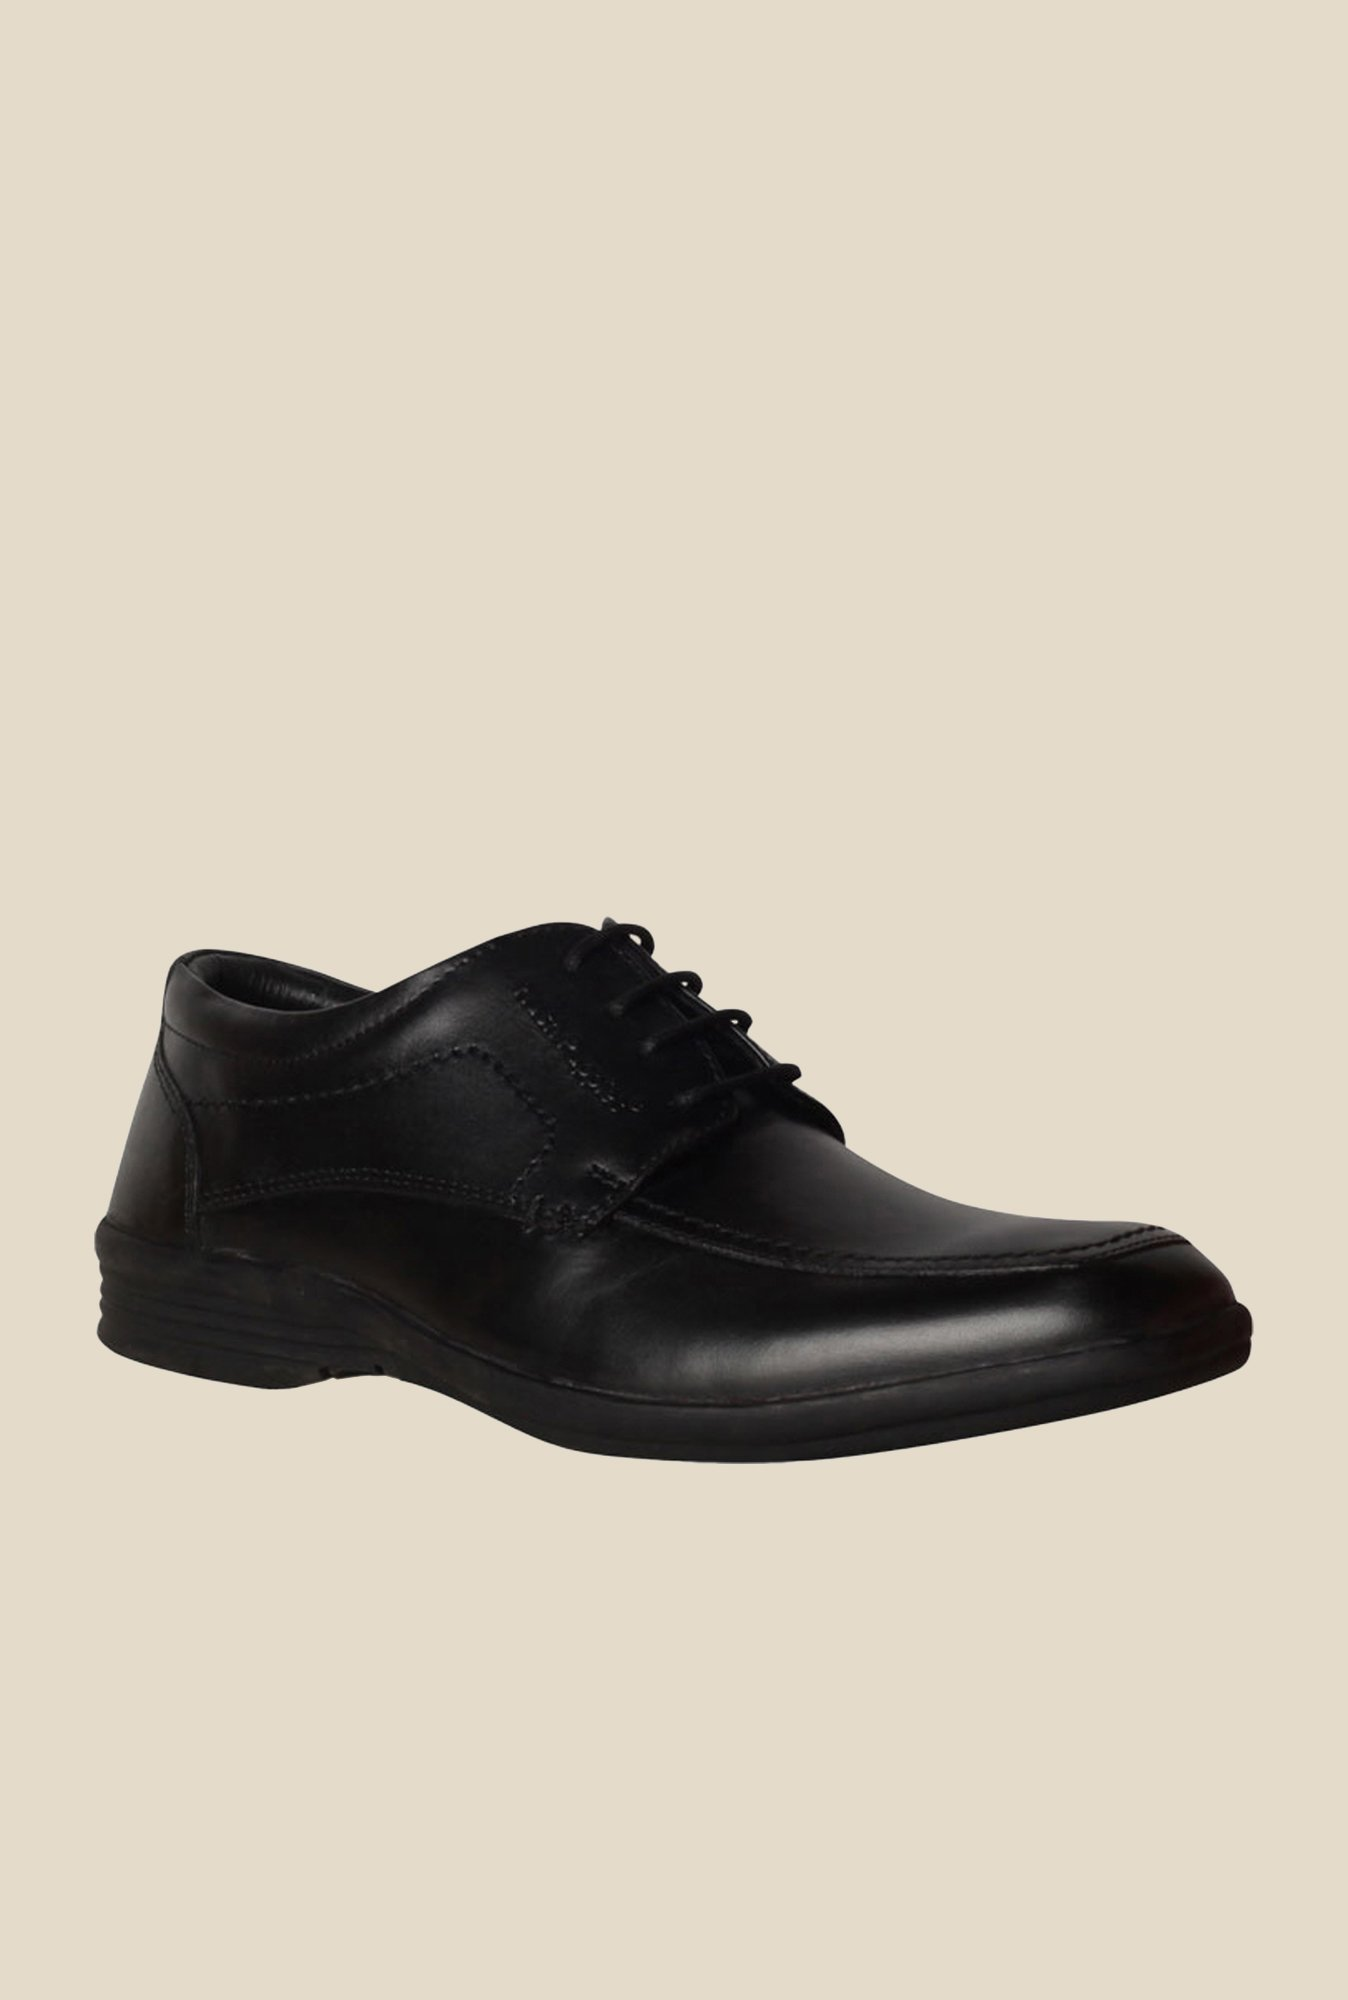 Hush Puppies Hooter Black Derby Shoes